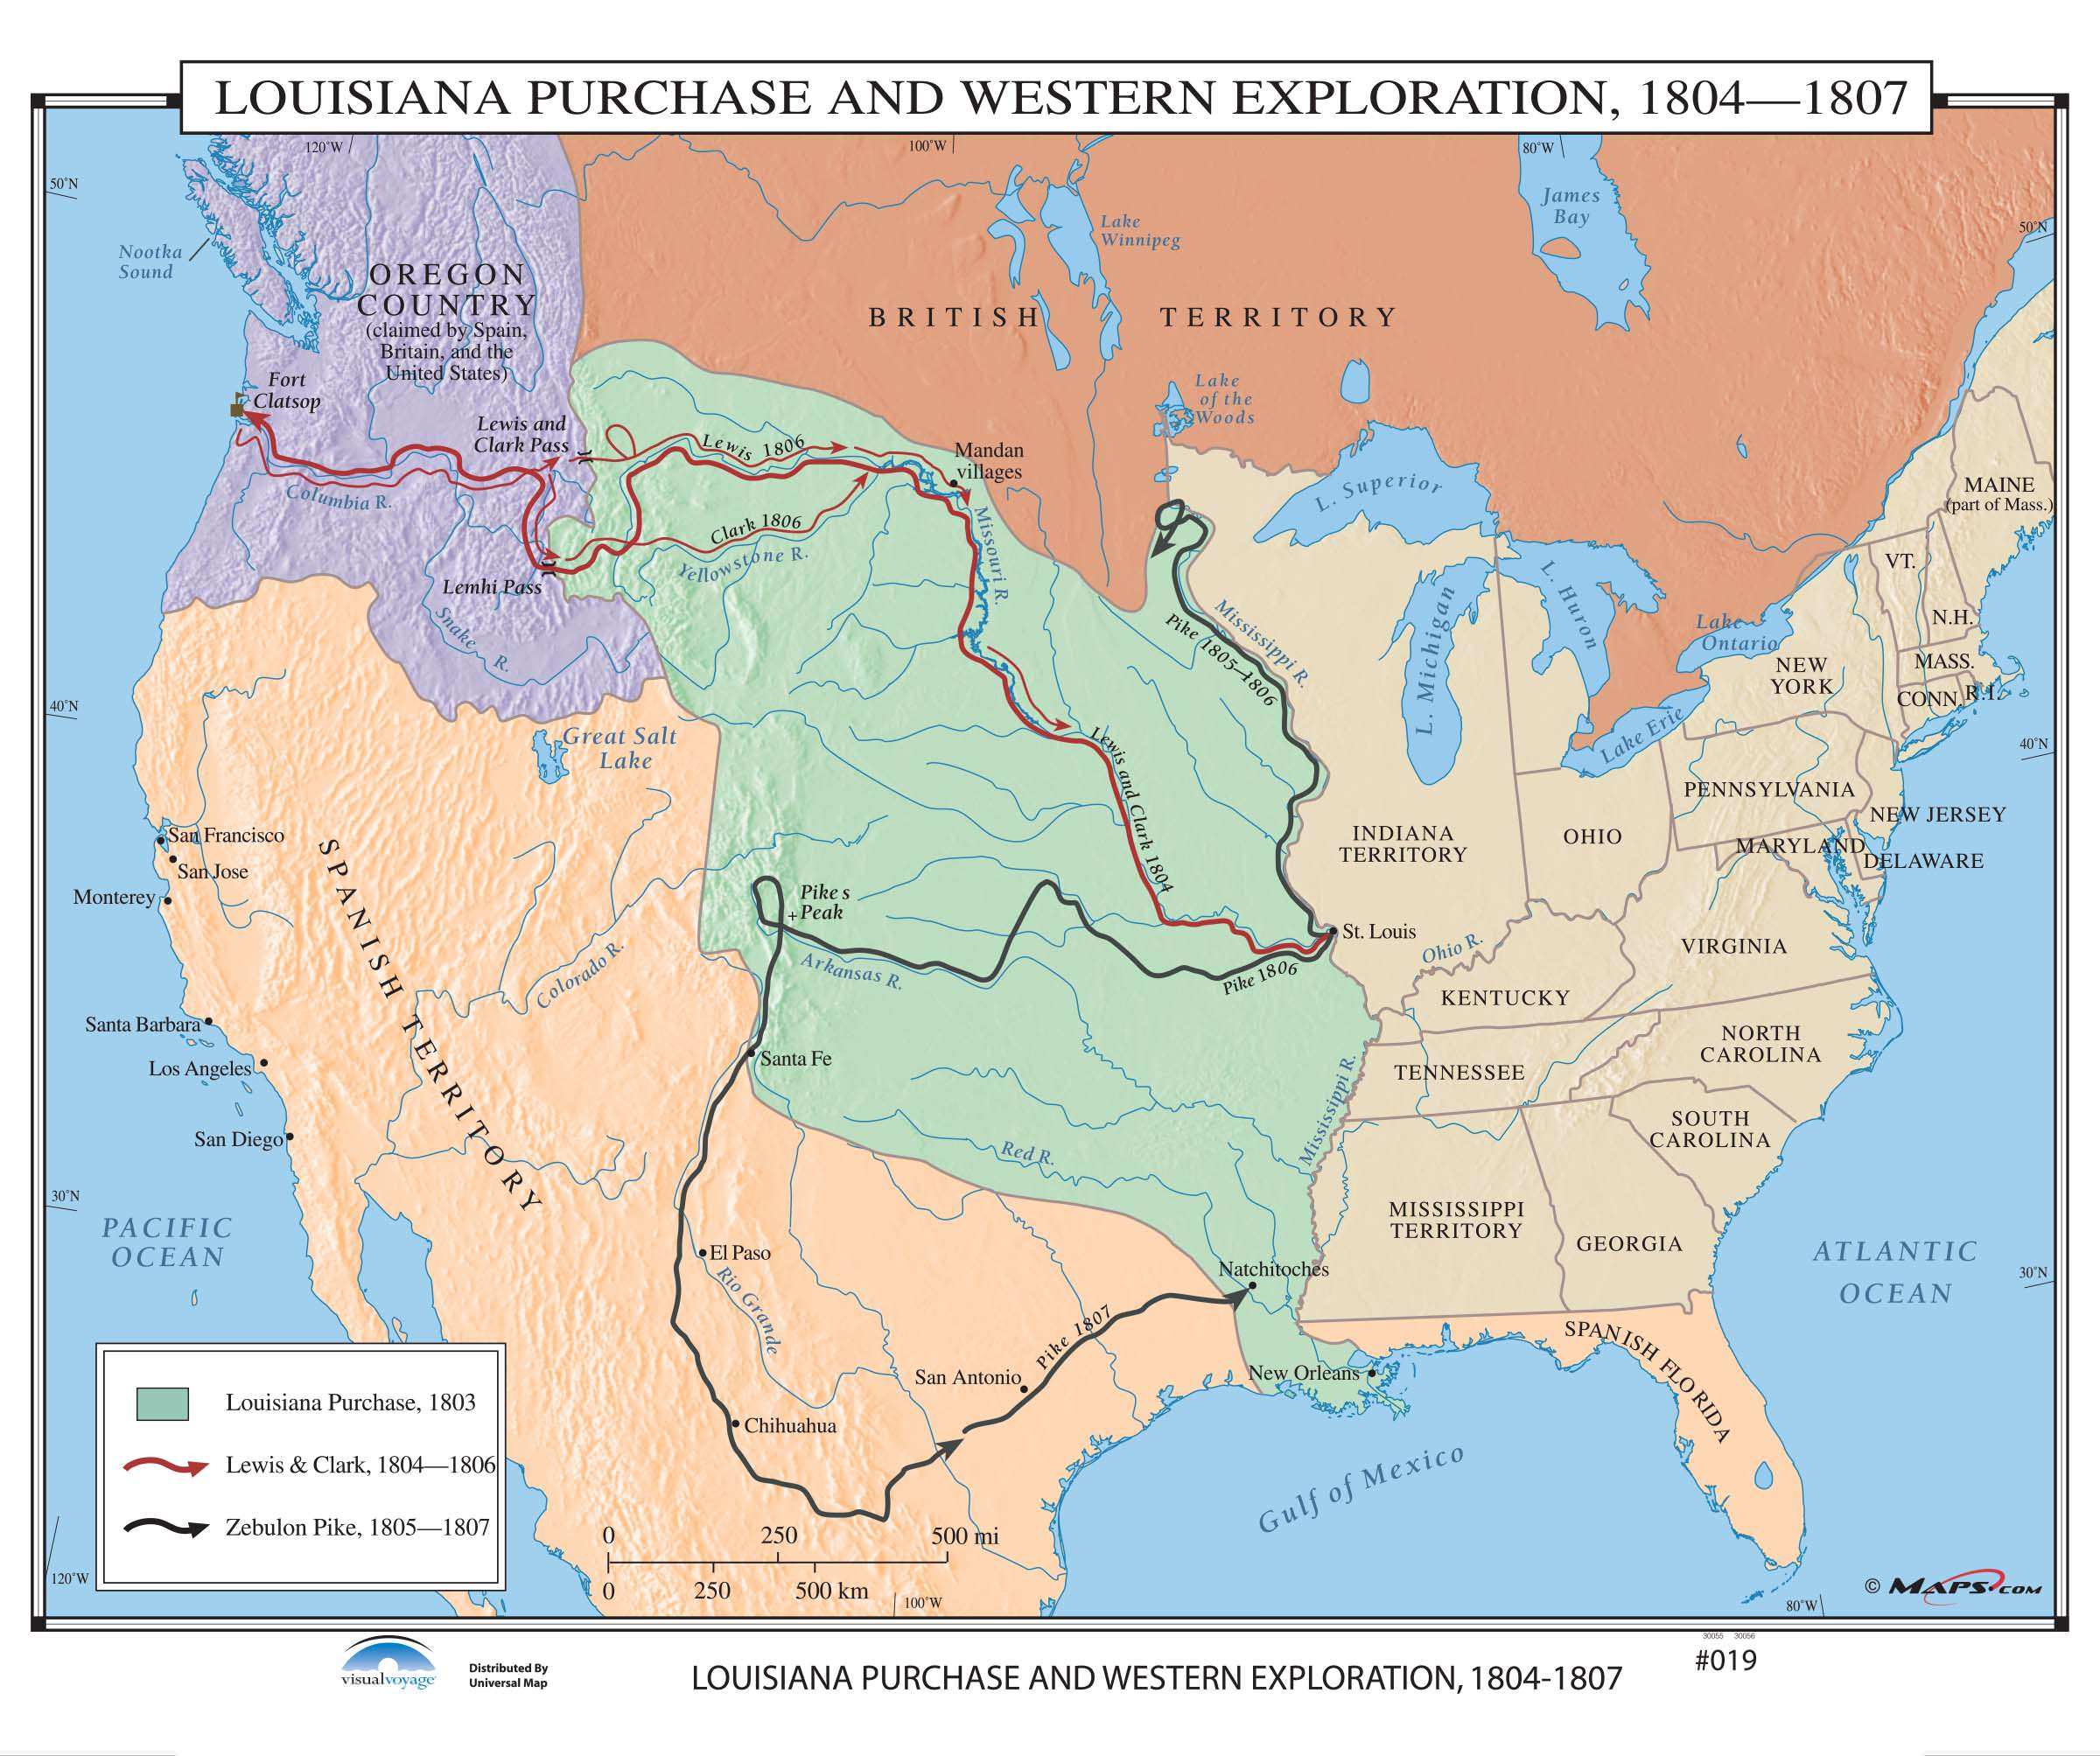 Map Of Louisiana Territory.019 Louisiana Purchase Western Exploration 1804 1807 Kappa Map